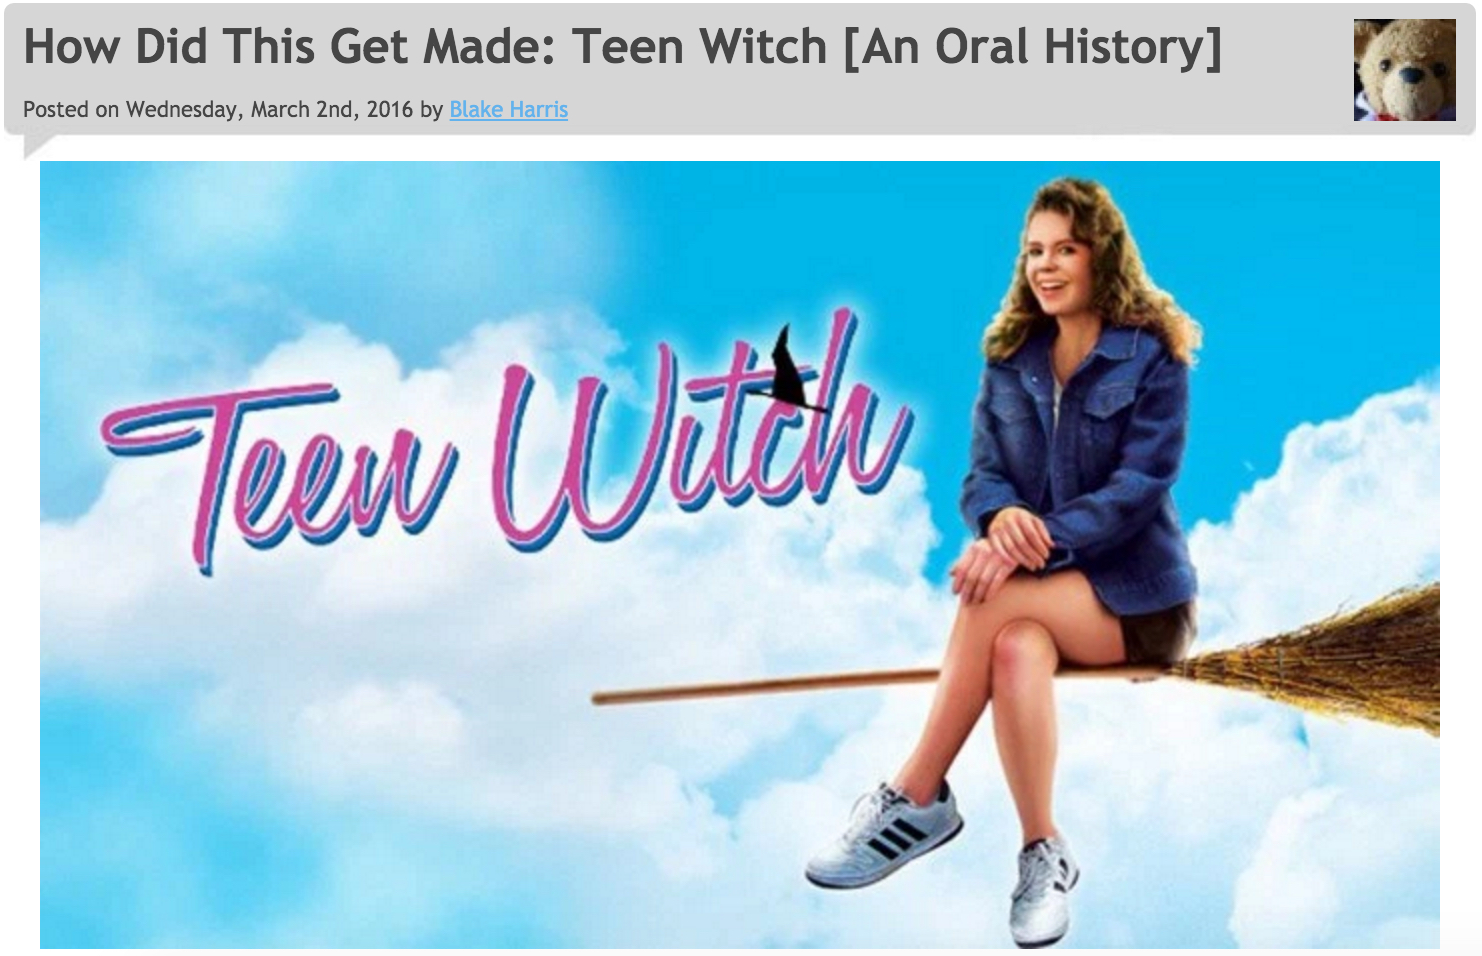 3/2/16: TEEN WITCH